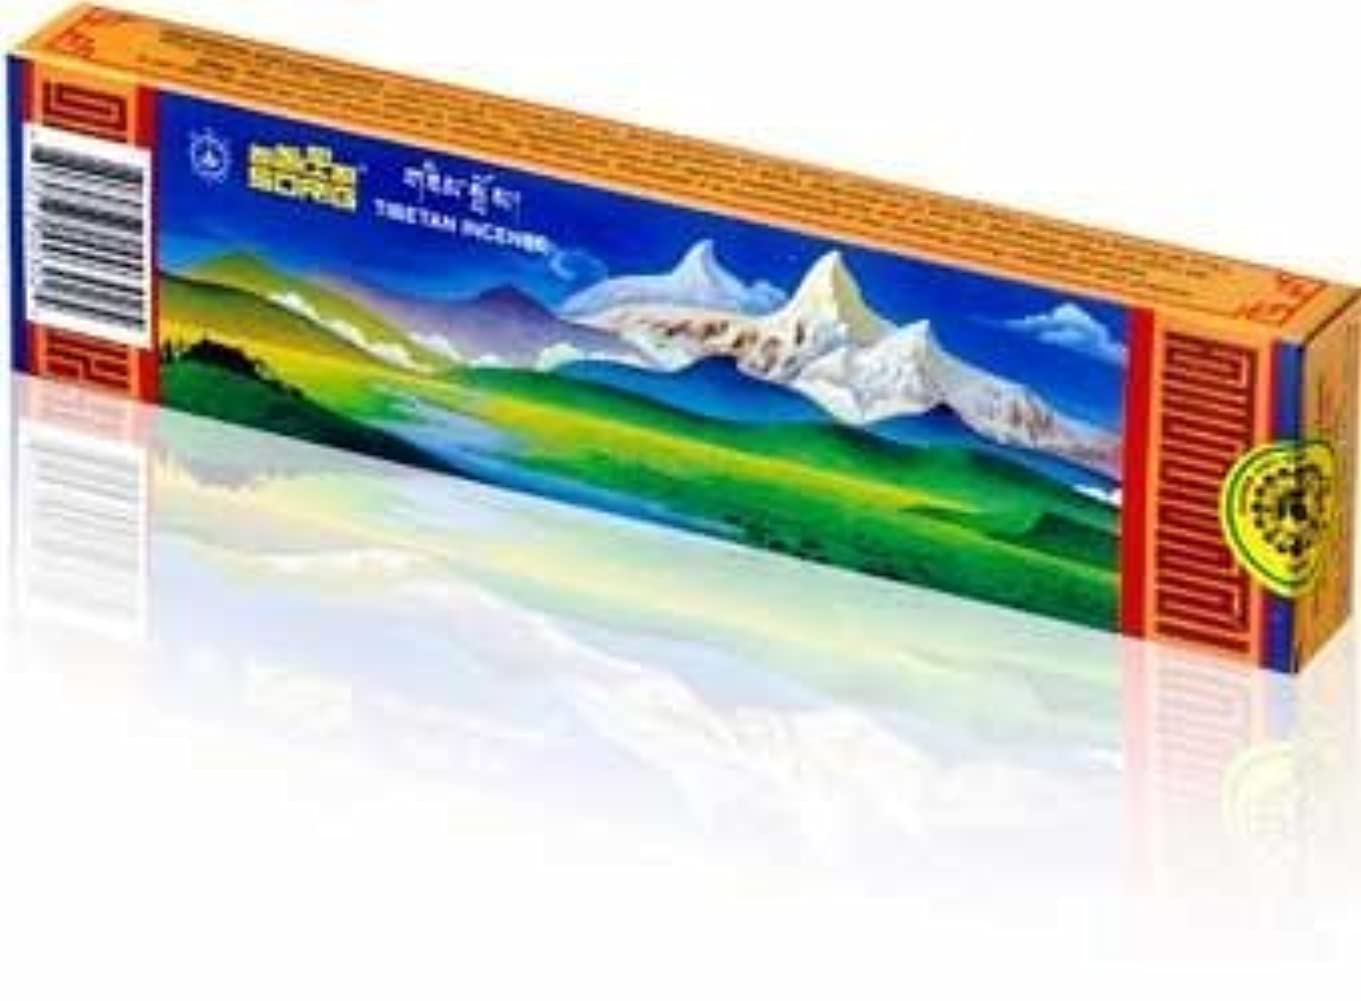 人工説教キッチンSorig Natural Handmade Tibetan Incense Sticks by Men-Tsee-Khang- 20/40/60 Count (40) by Men-Tsee-Khang [並行輸入品]